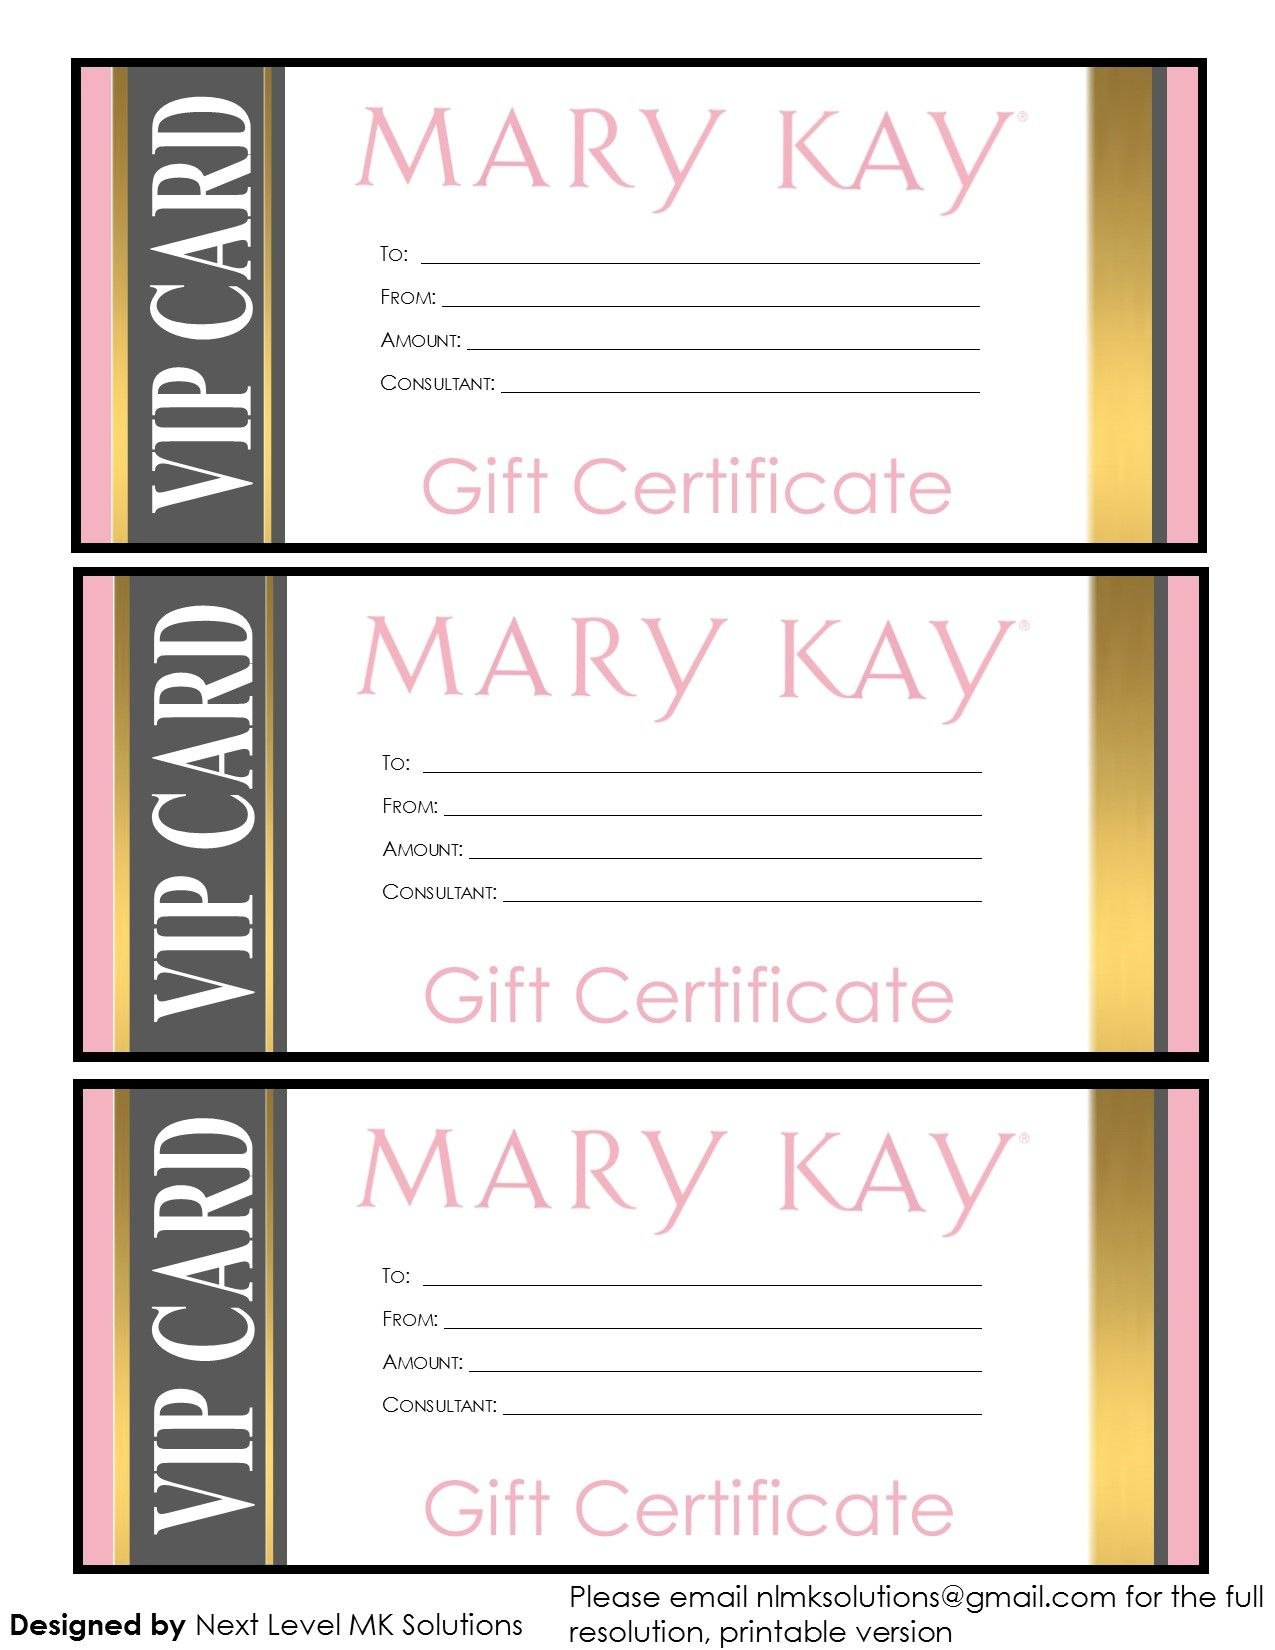 Mary Kay Gift Certificates  Please Email For The Full Pdf Printable Within Mary Kay Gift Certificate Template